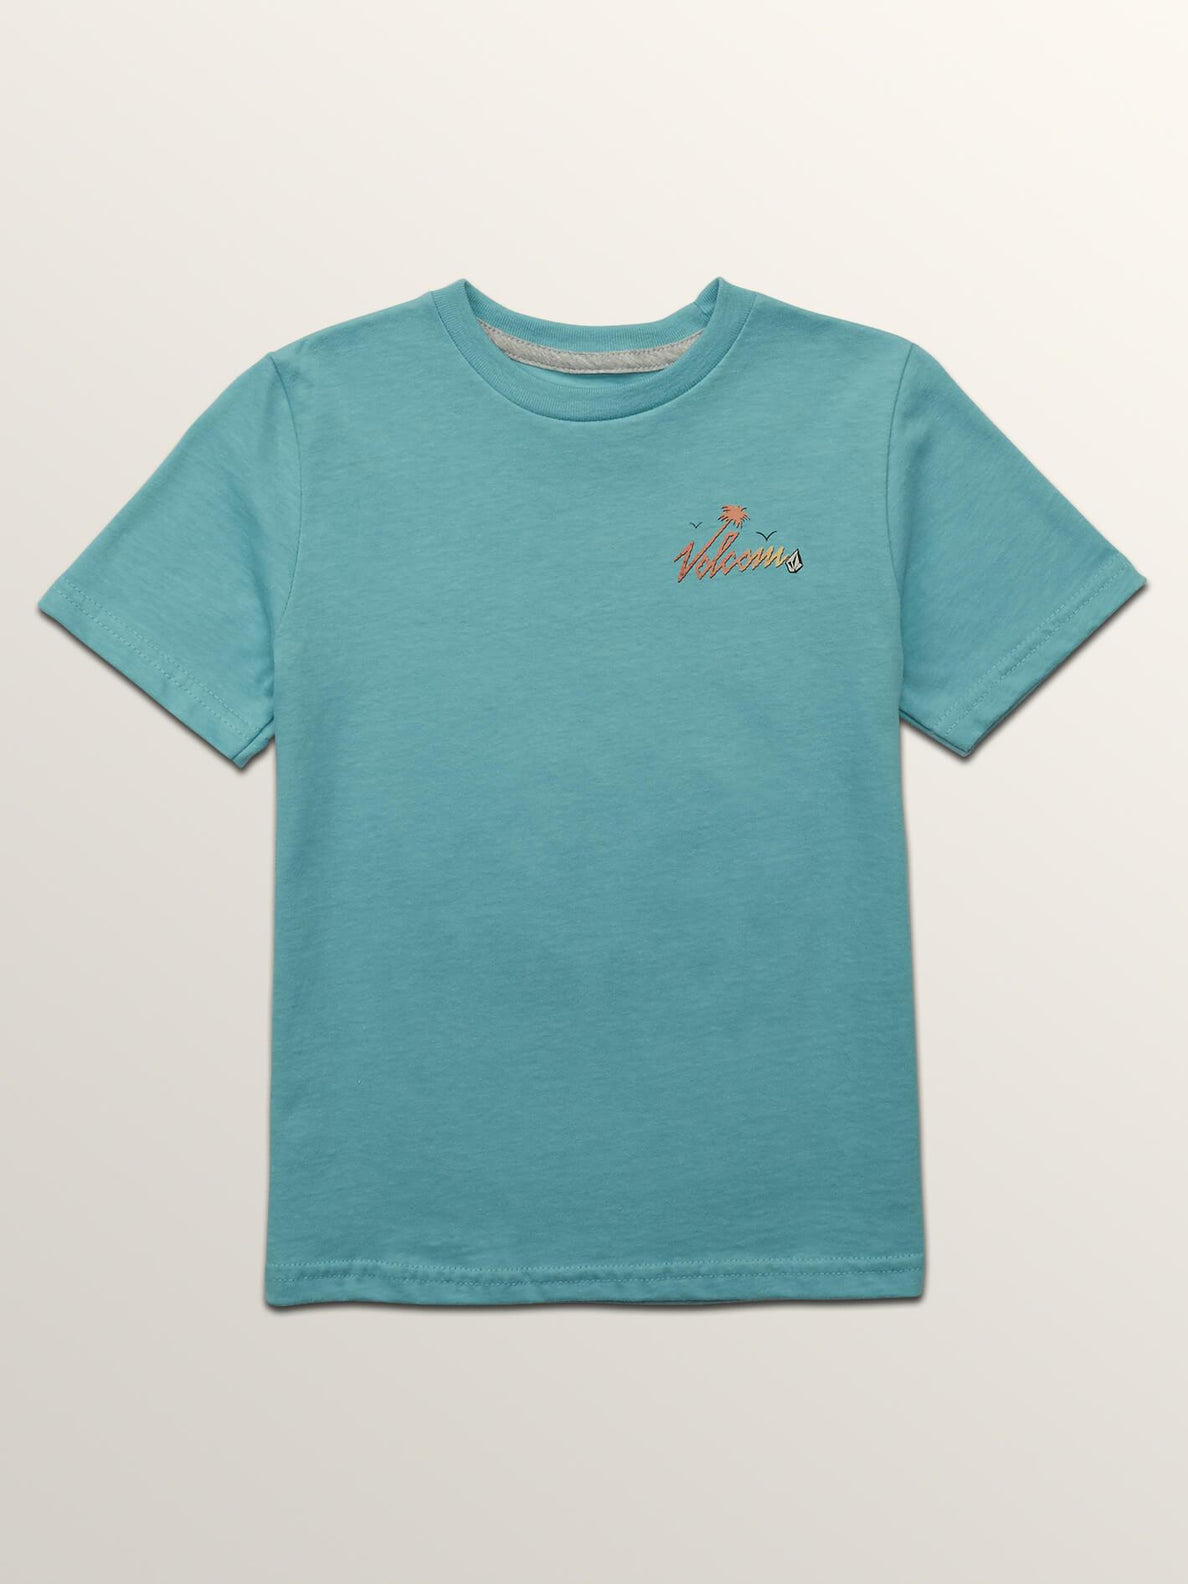 Little Boys Flexer Short Sleeve Tee In Blue Bird, Front View